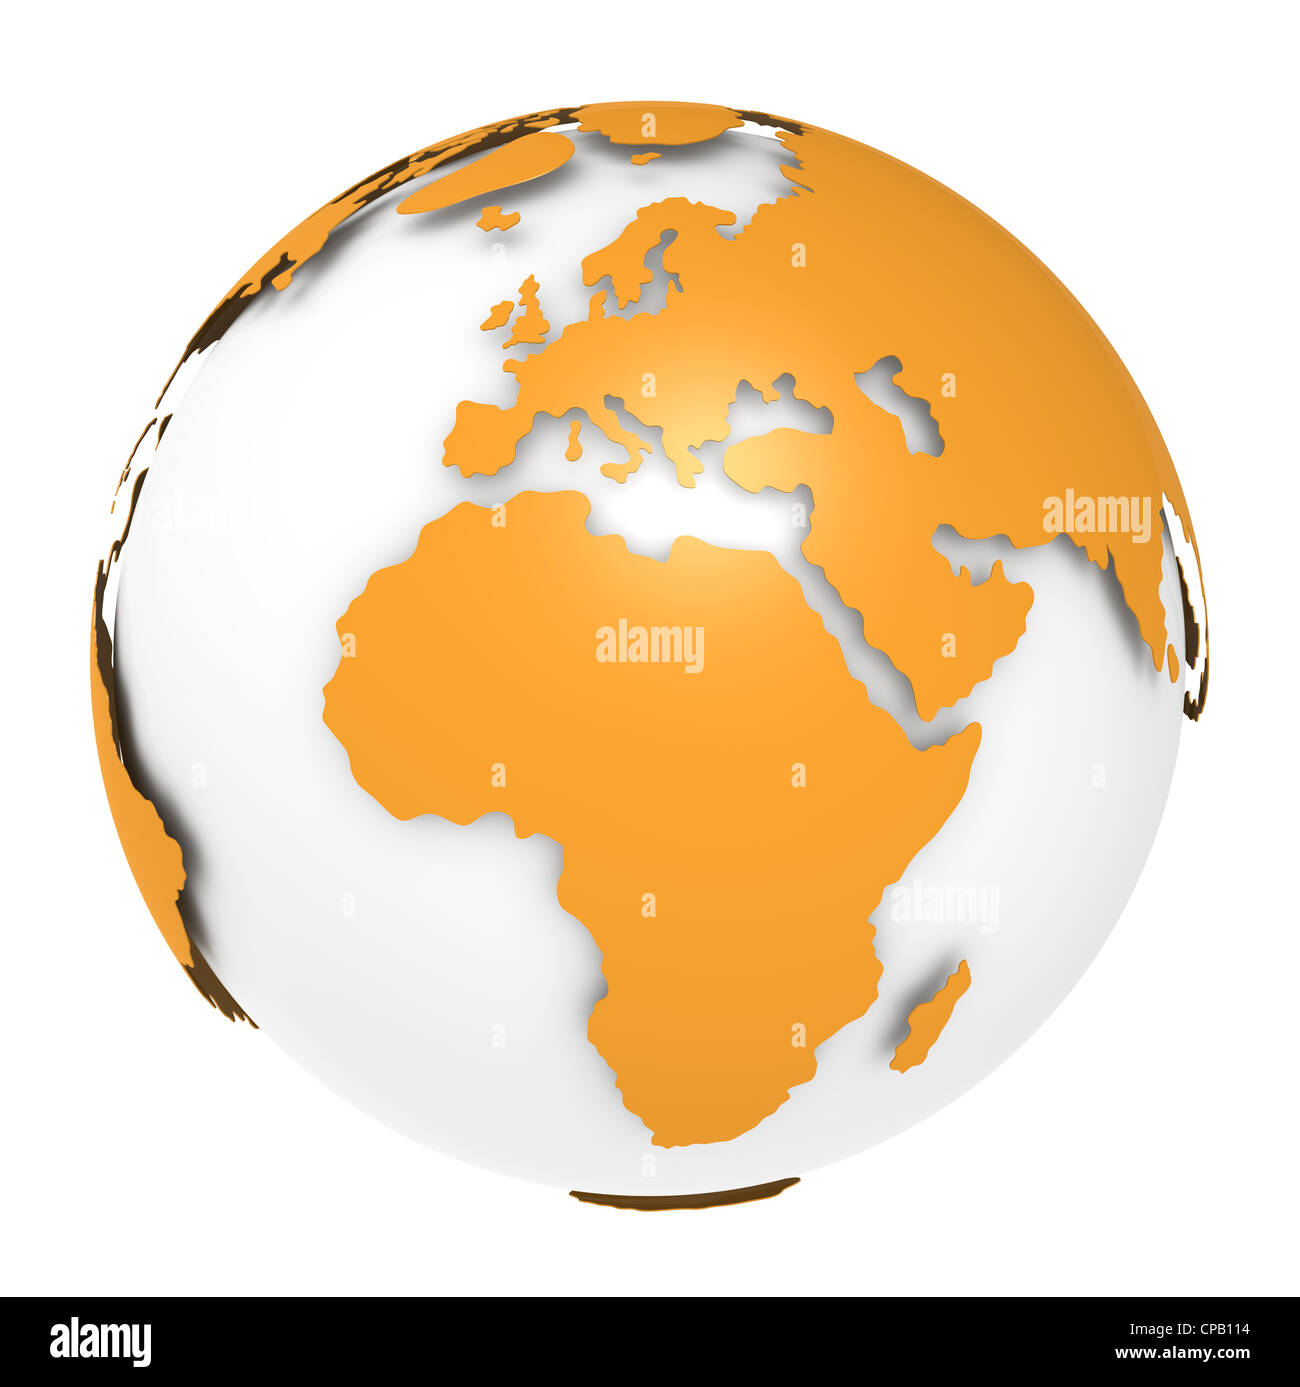 The Earth, Orange Shell design. Sparse and Isolated. - Stock Image